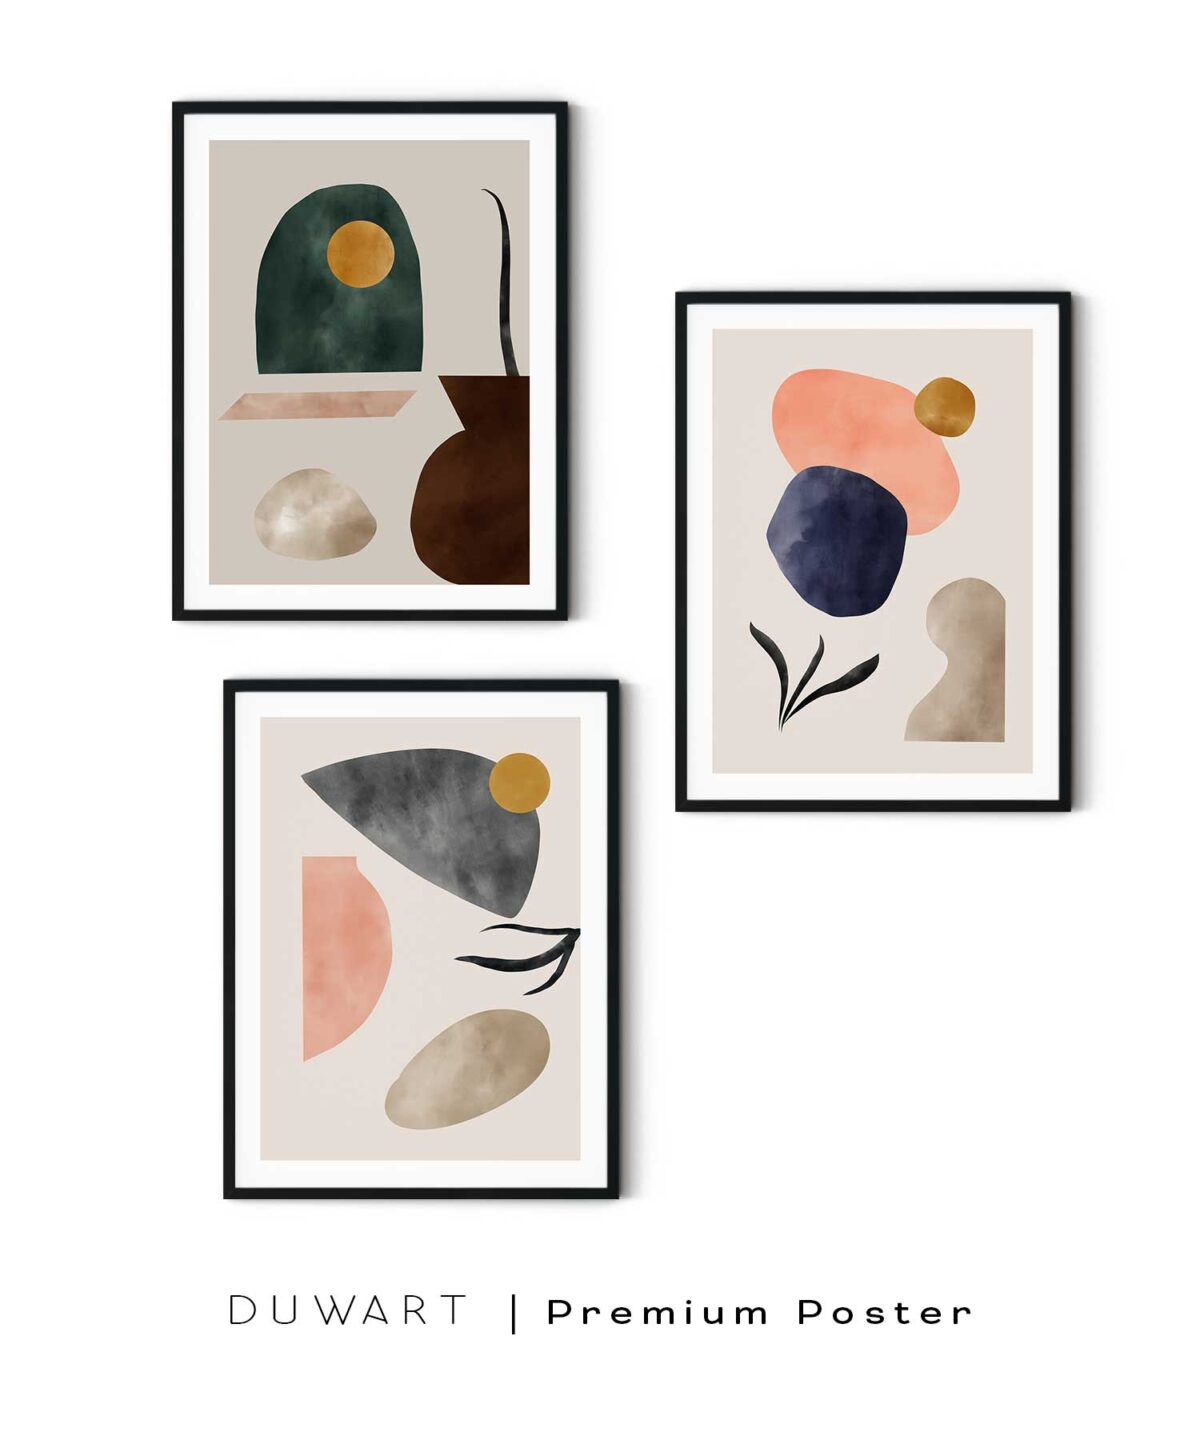 Abstract-Forms-Poster-Set-White-Background-Duwart